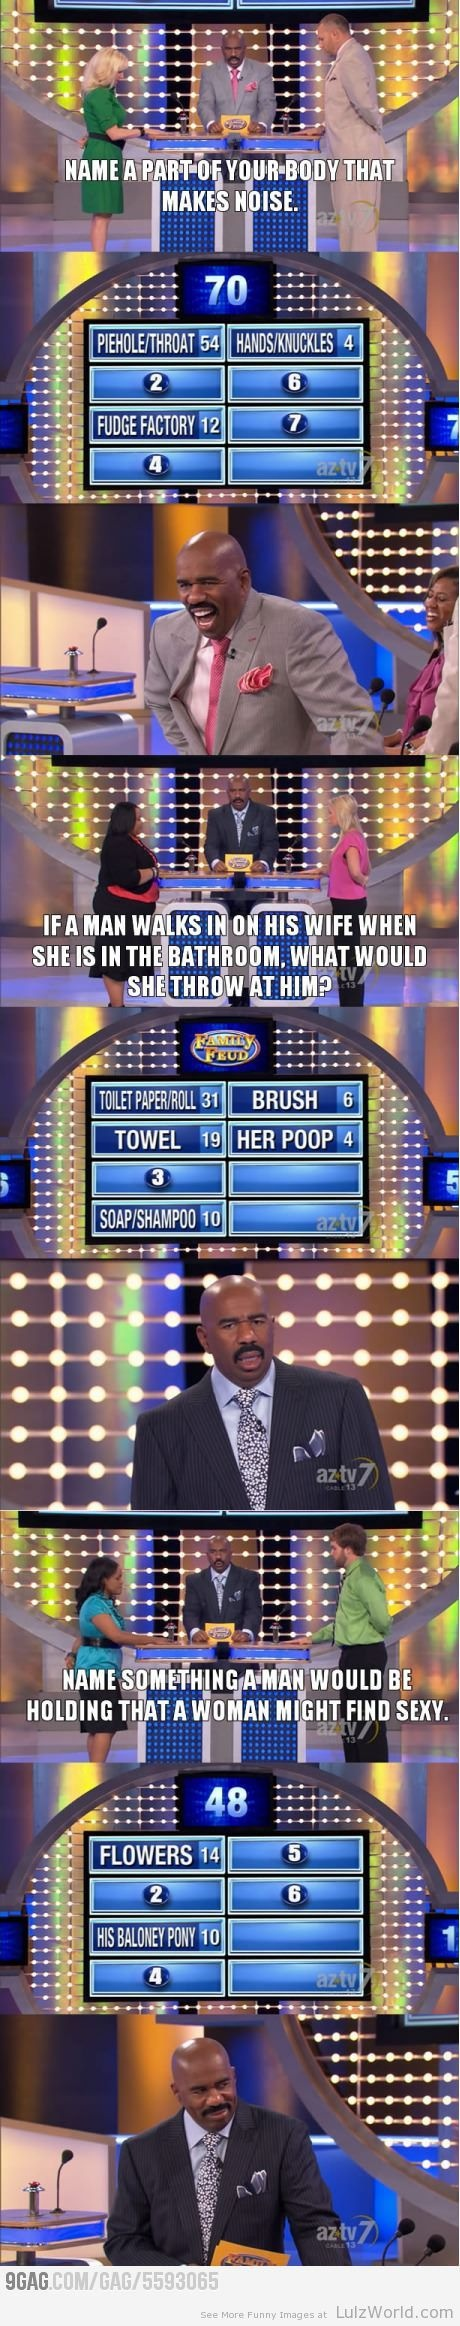 17 best images about funny answers funny test i have to start watching family feud again has the best funny pics gifs videos gaming anime manga movie tv cosplay sport food memes cute